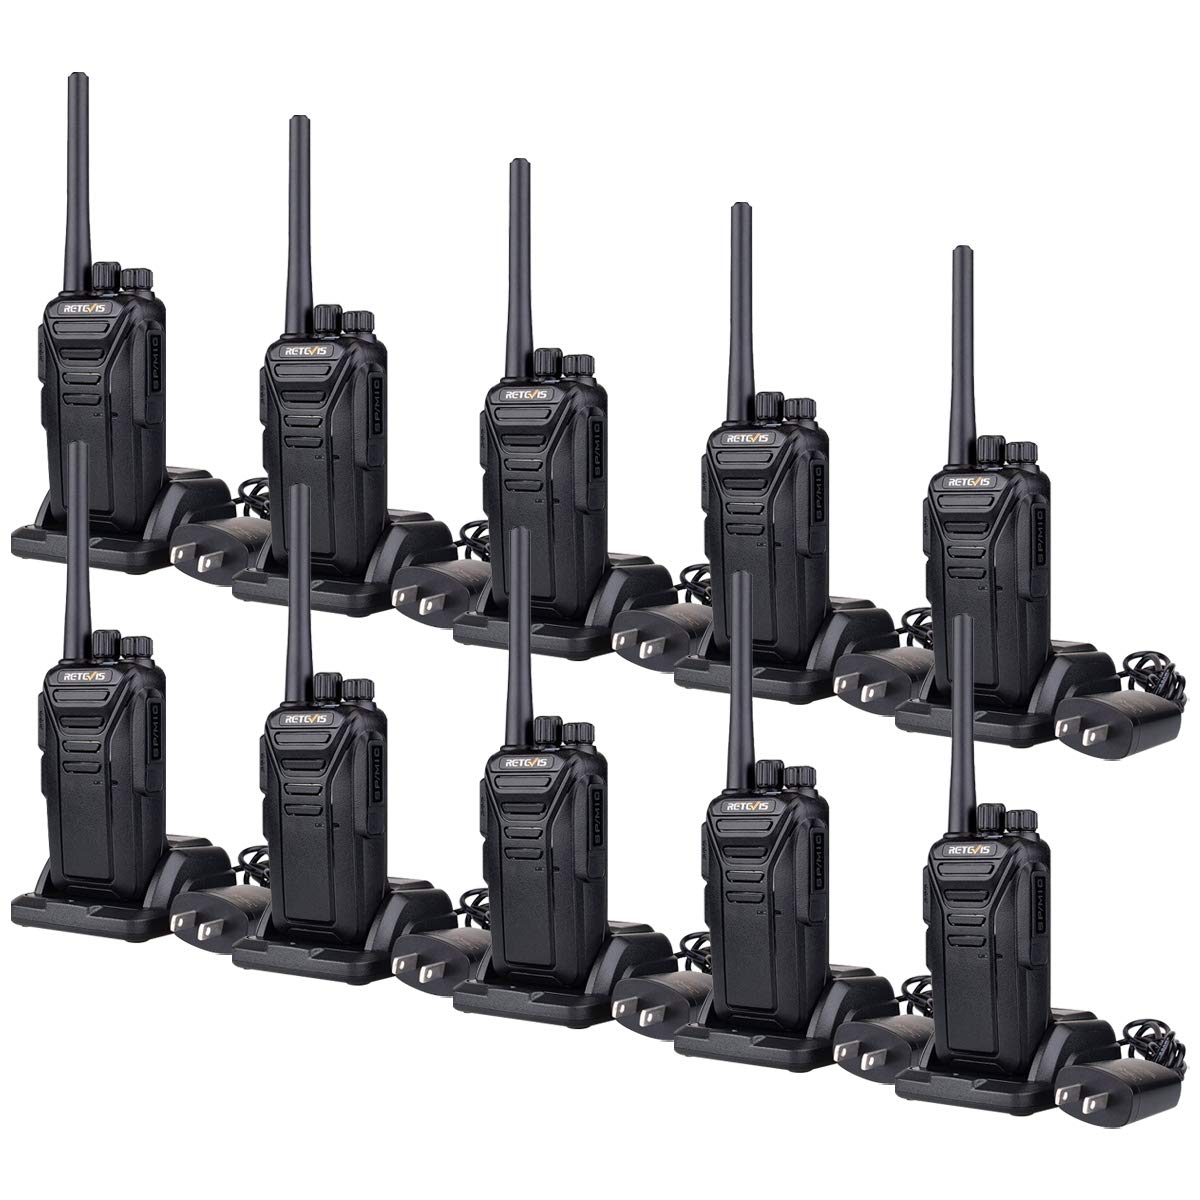 Retevis RT27 Two-Way Radios Rechargeable Long Range 2 Way Radio for Adults UHF FRS VOX Security Heavy Duty Walkie Talkies (Black,10 Pack) by Retevis